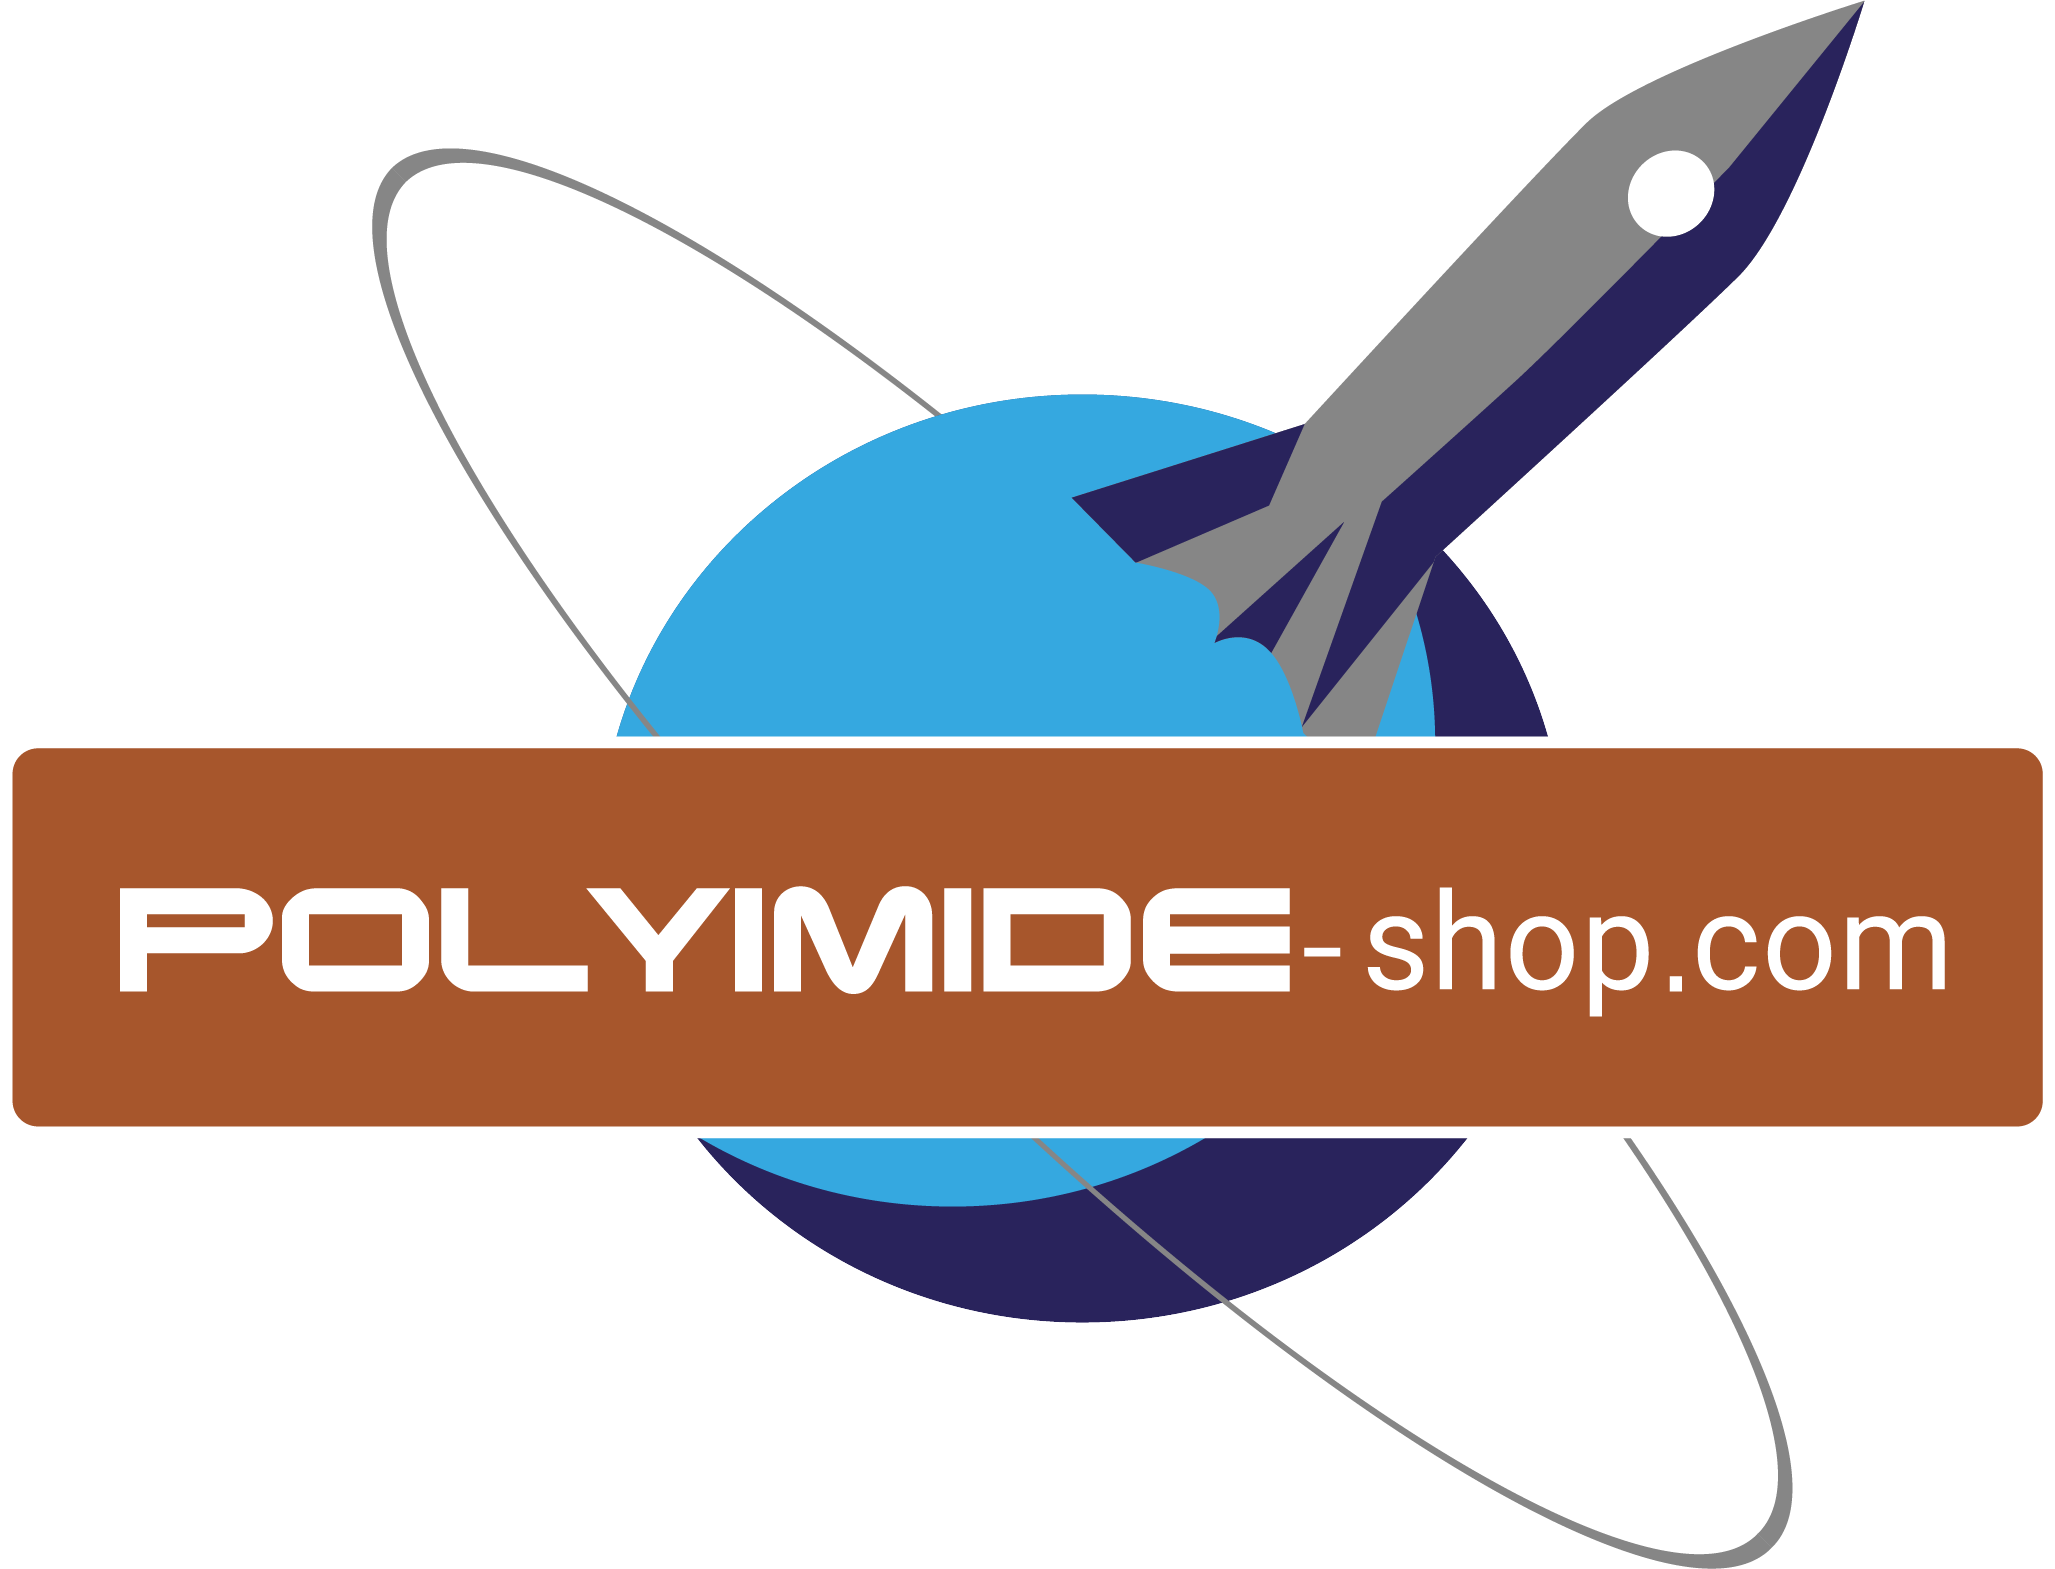 POLYIMIDE-shop.com BARplast Aurum Polyimid PEEK